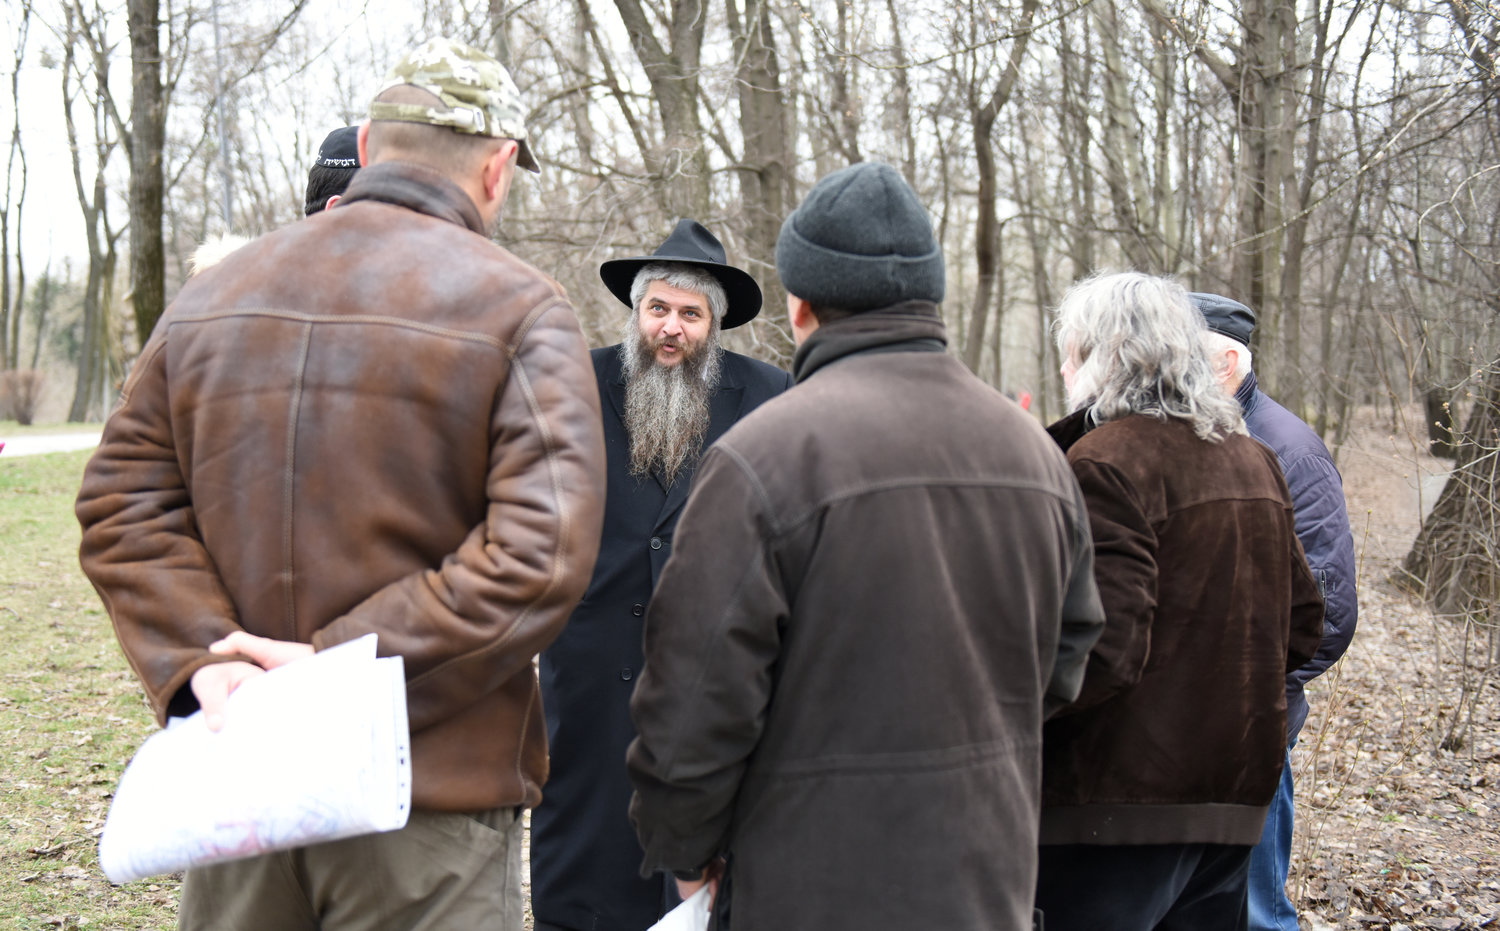 Moshe Azman, a Ukrainian rabbi, discussing with architecht the construction of a Holocaust museum near the Babi Yar monument in Kiev, Ukraine.